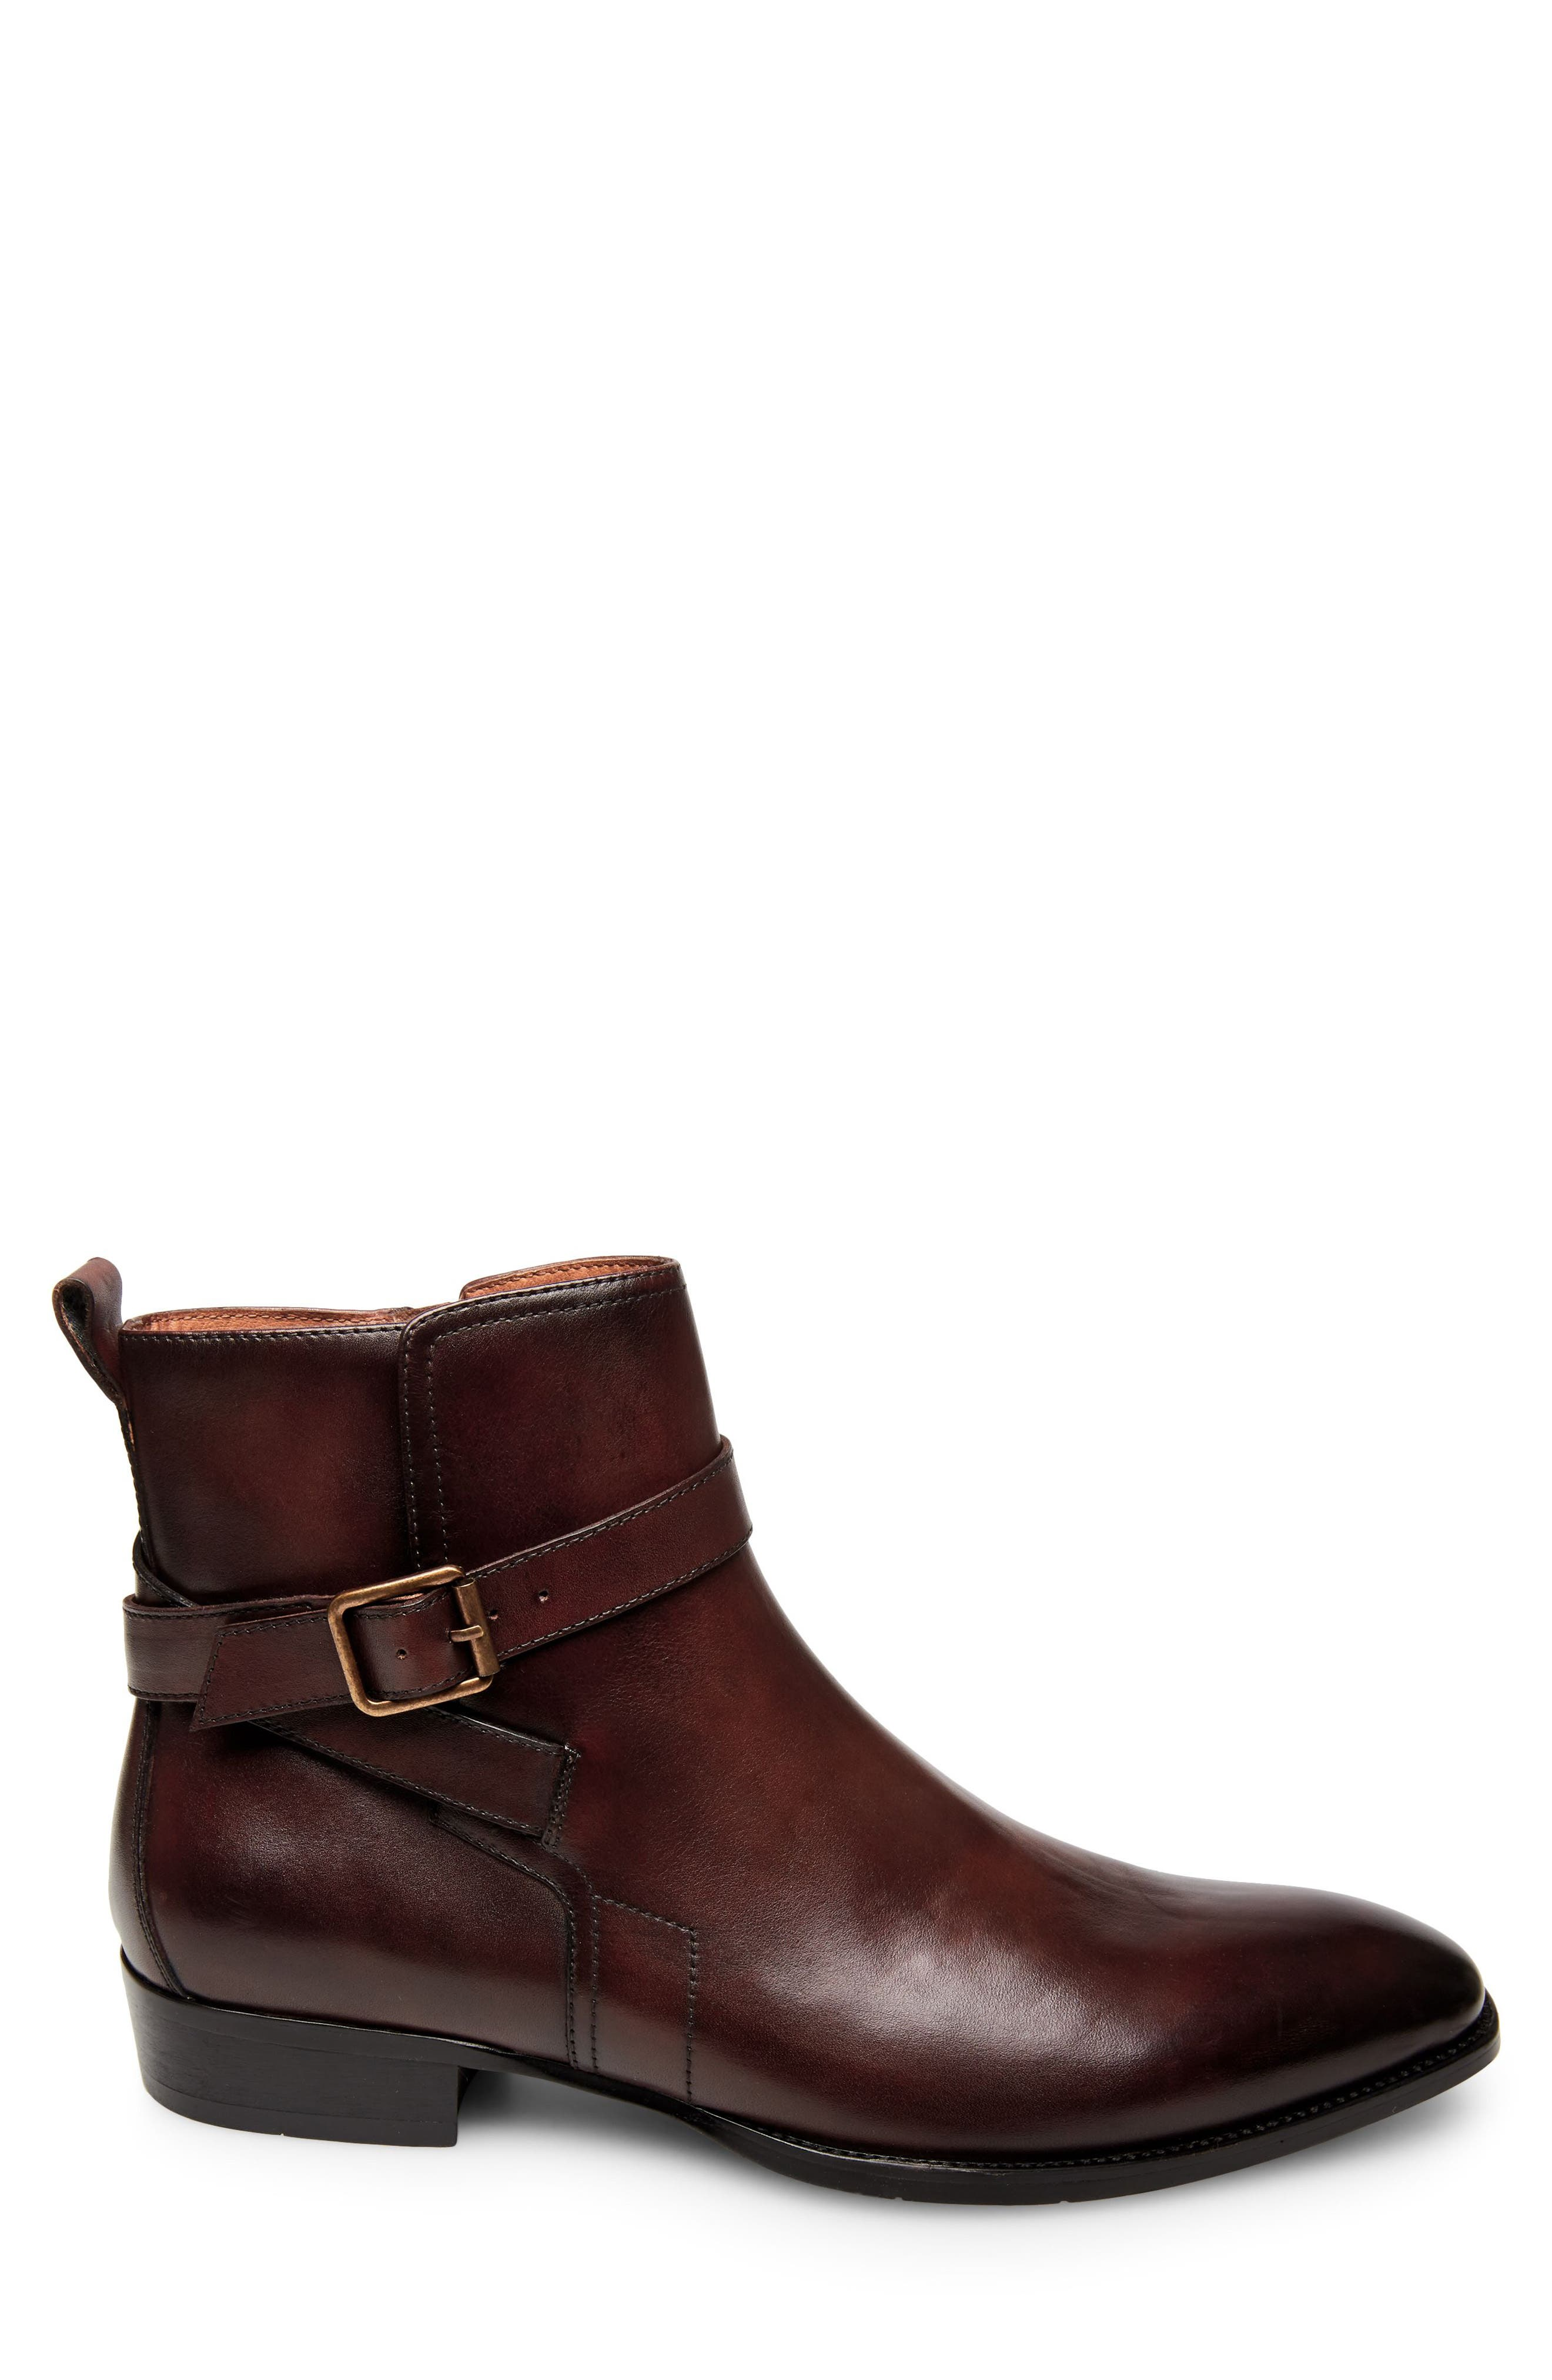 Sacha Buckle Strap Boot,                             Alternate thumbnail 3, color,                             200